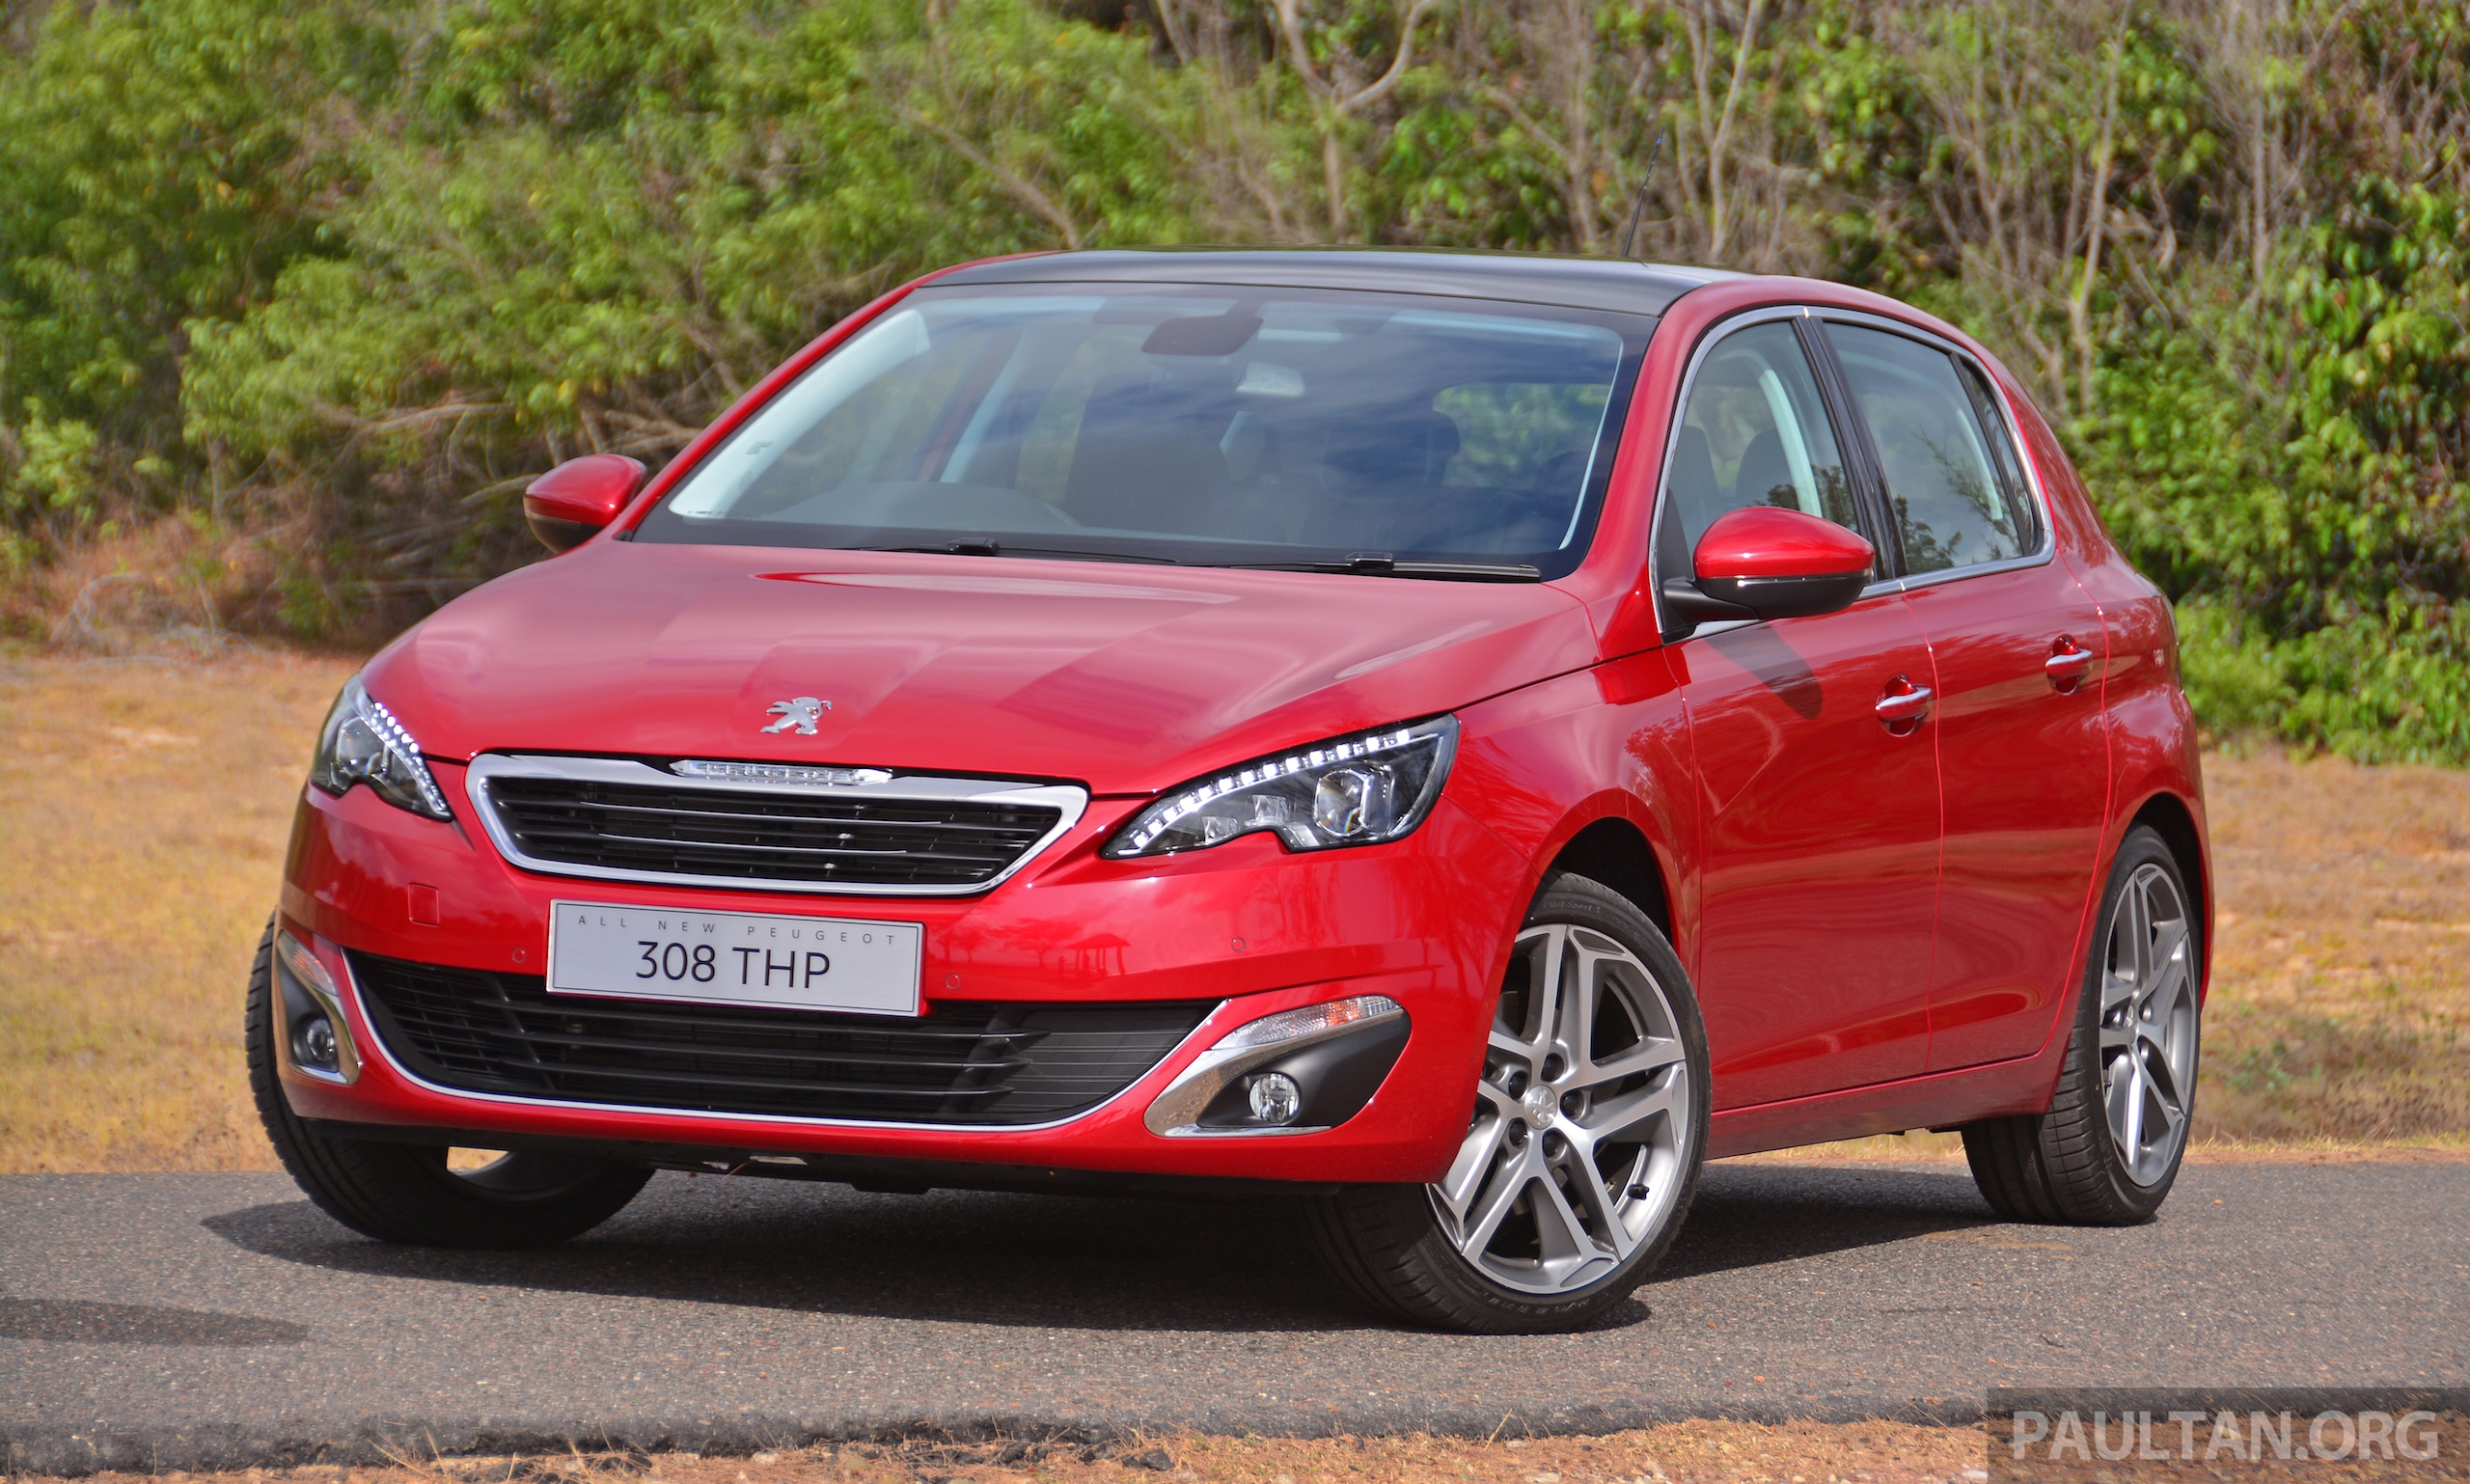 driven 2015 peugeot 308 thp 150 review in malaysia